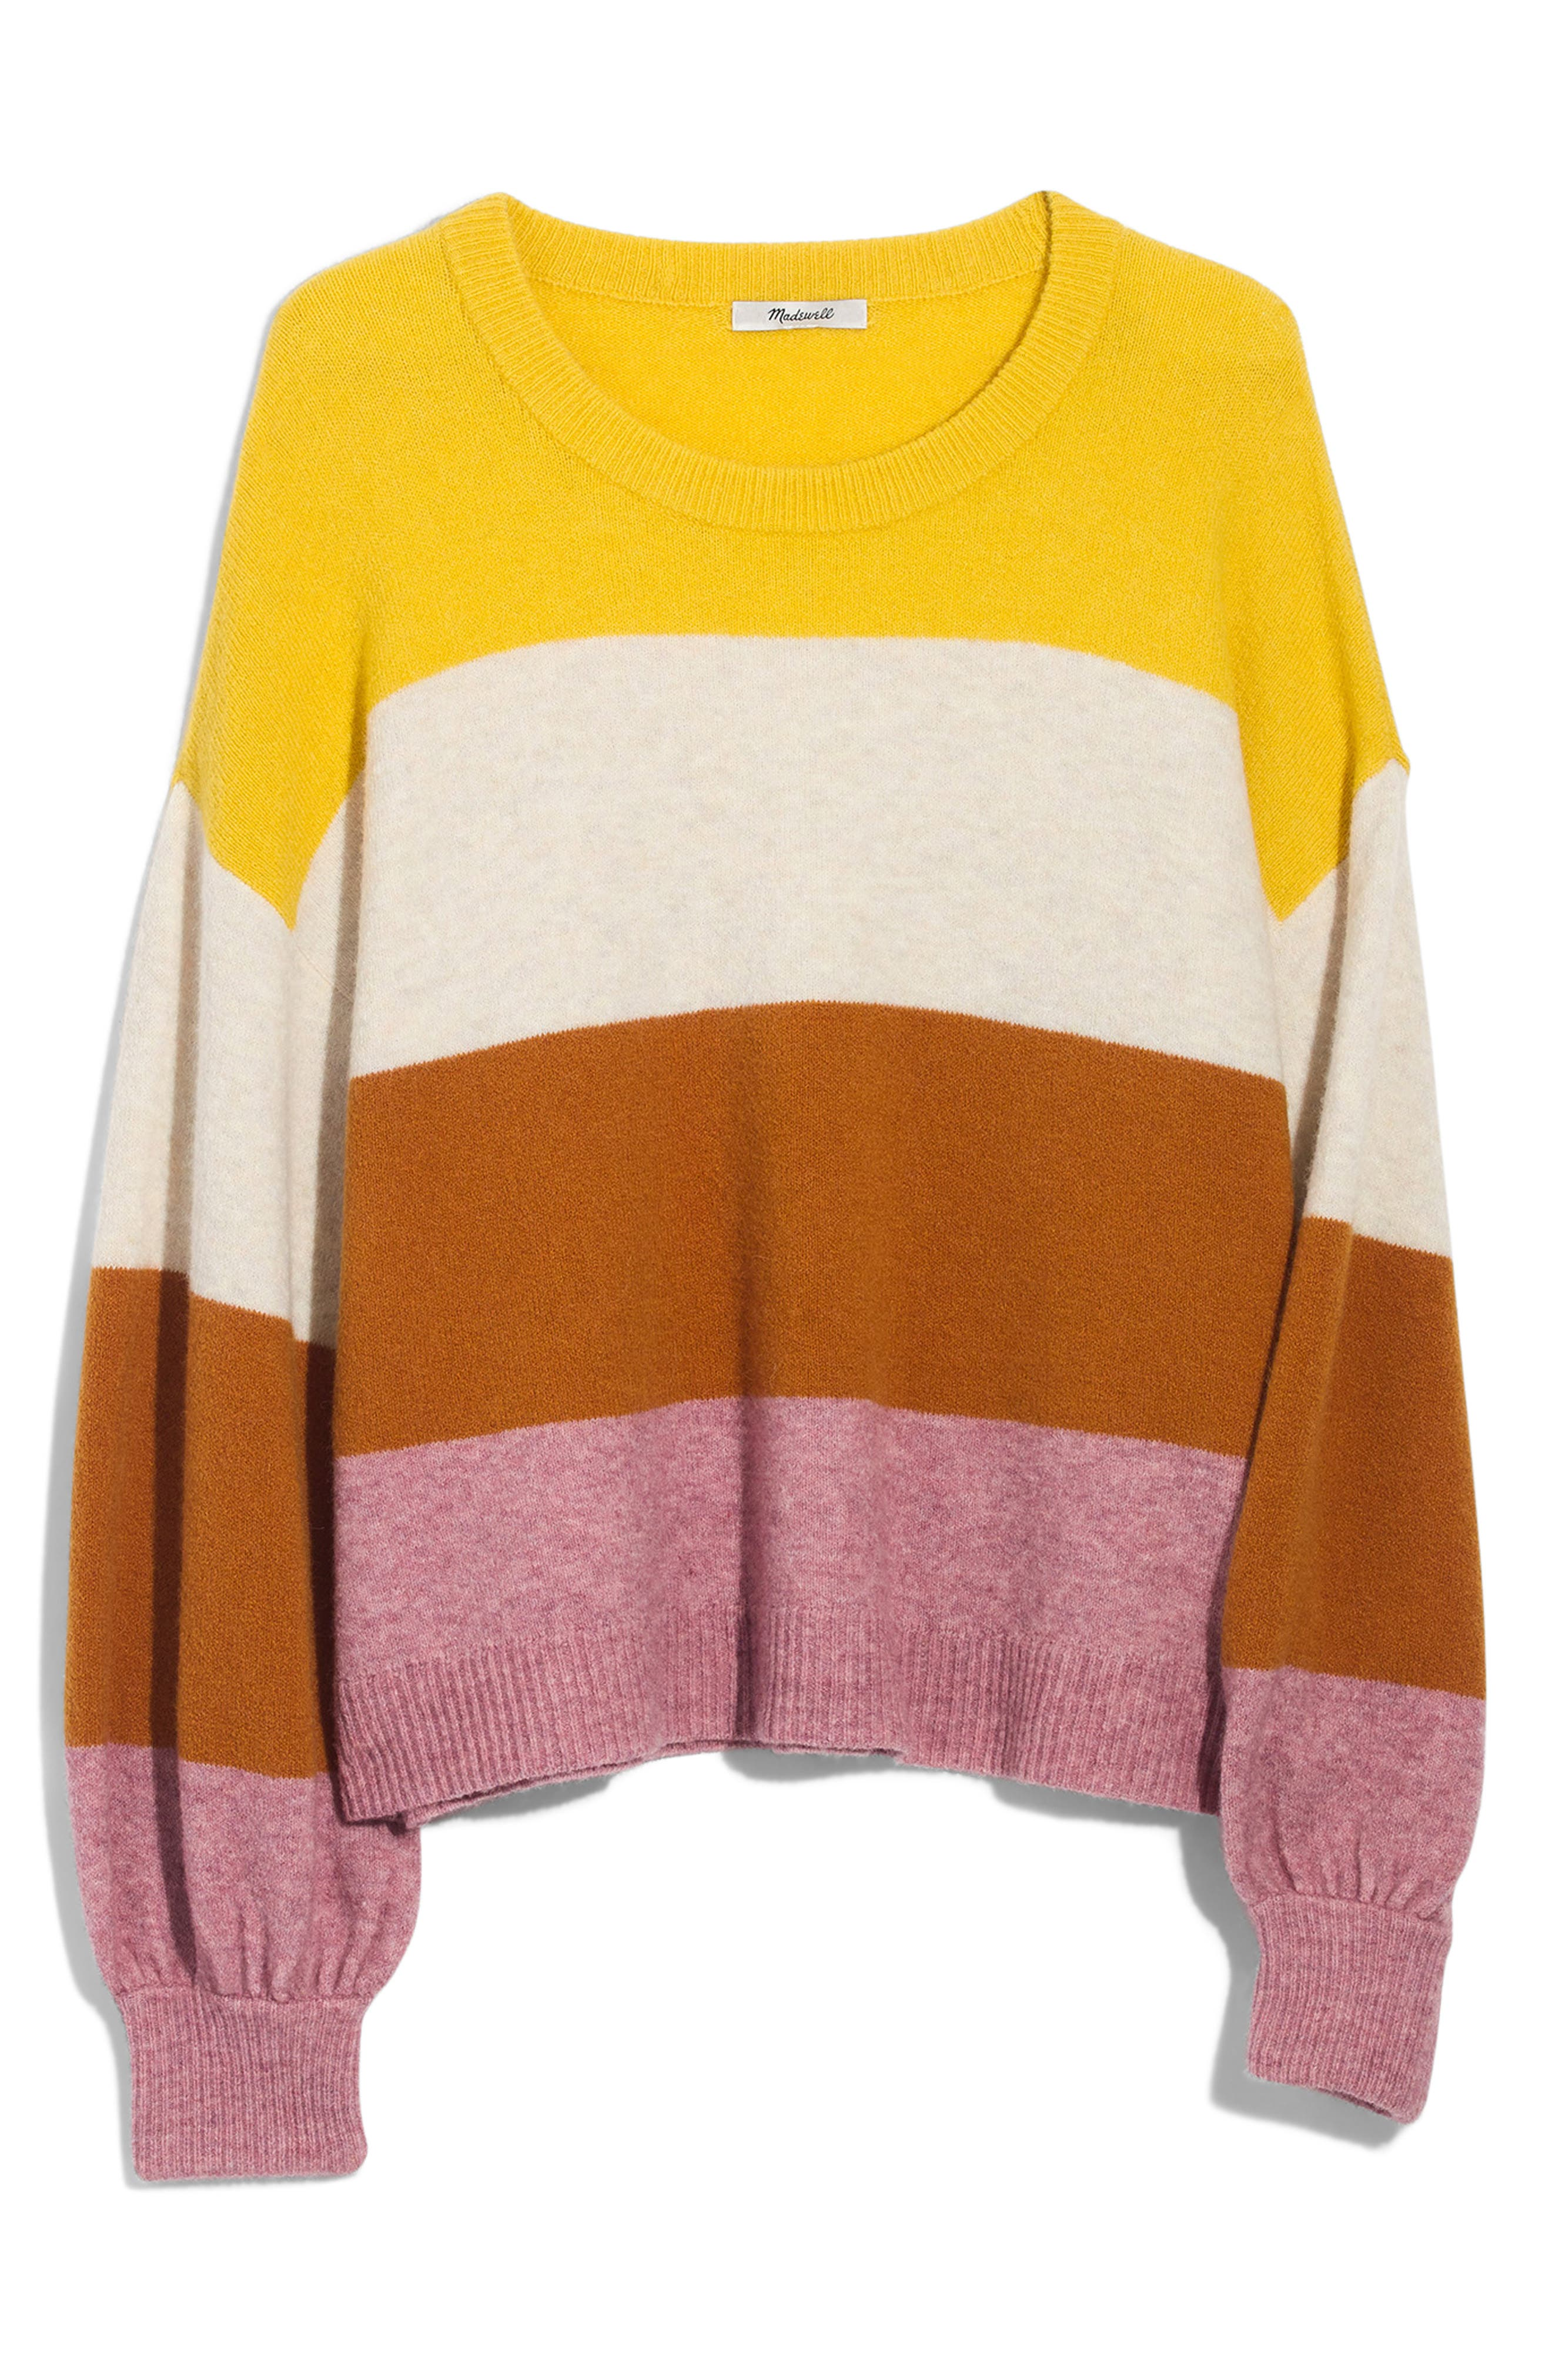 MADEWELL, Striped Balloon-Sleeve Pullover Sweater, Alternate thumbnail 3, color, HEATHER MULBERRY